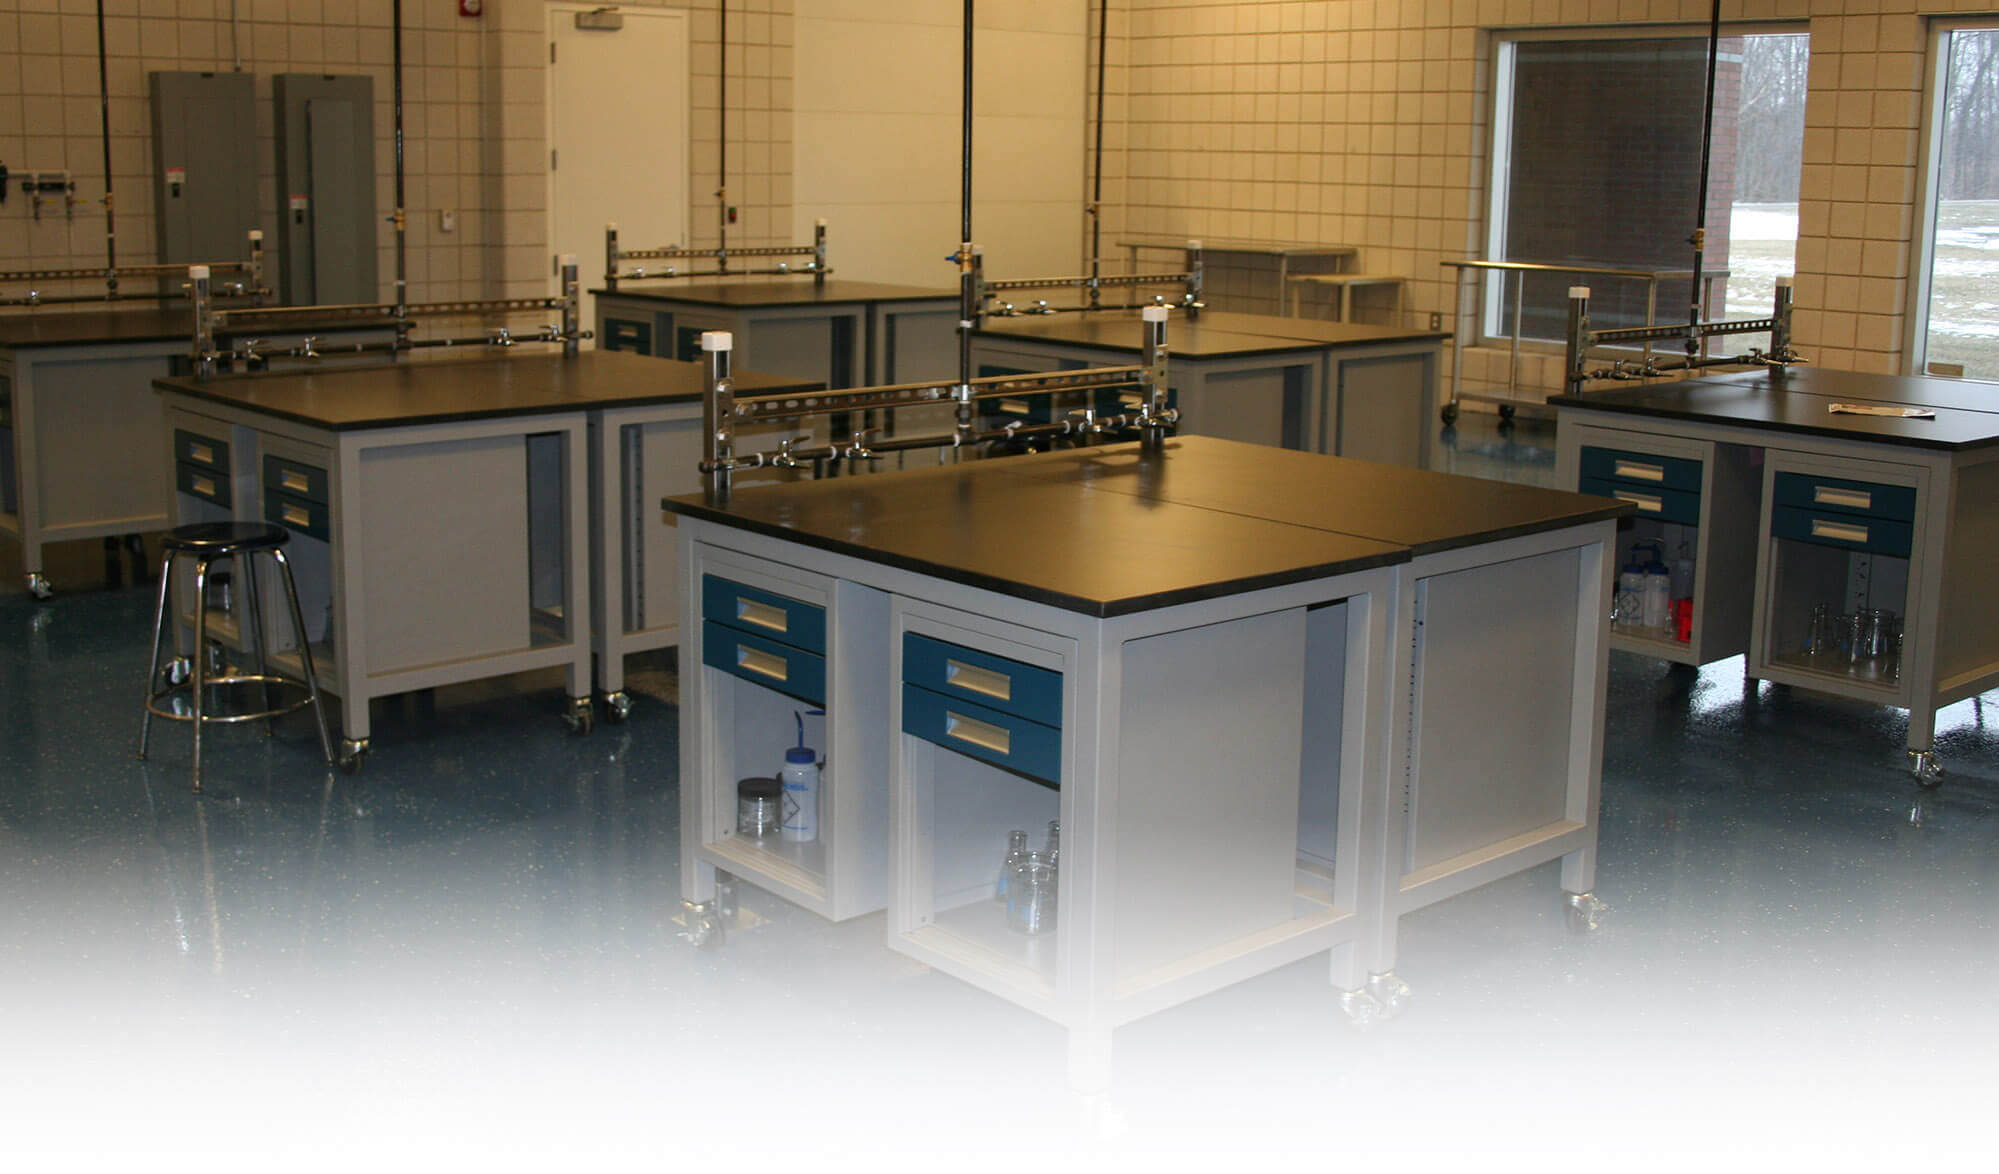 Laboratory Furniture Design Fair Laboratory Furniture  Lab Design & Installation  Fume Hoods . Design Decoration